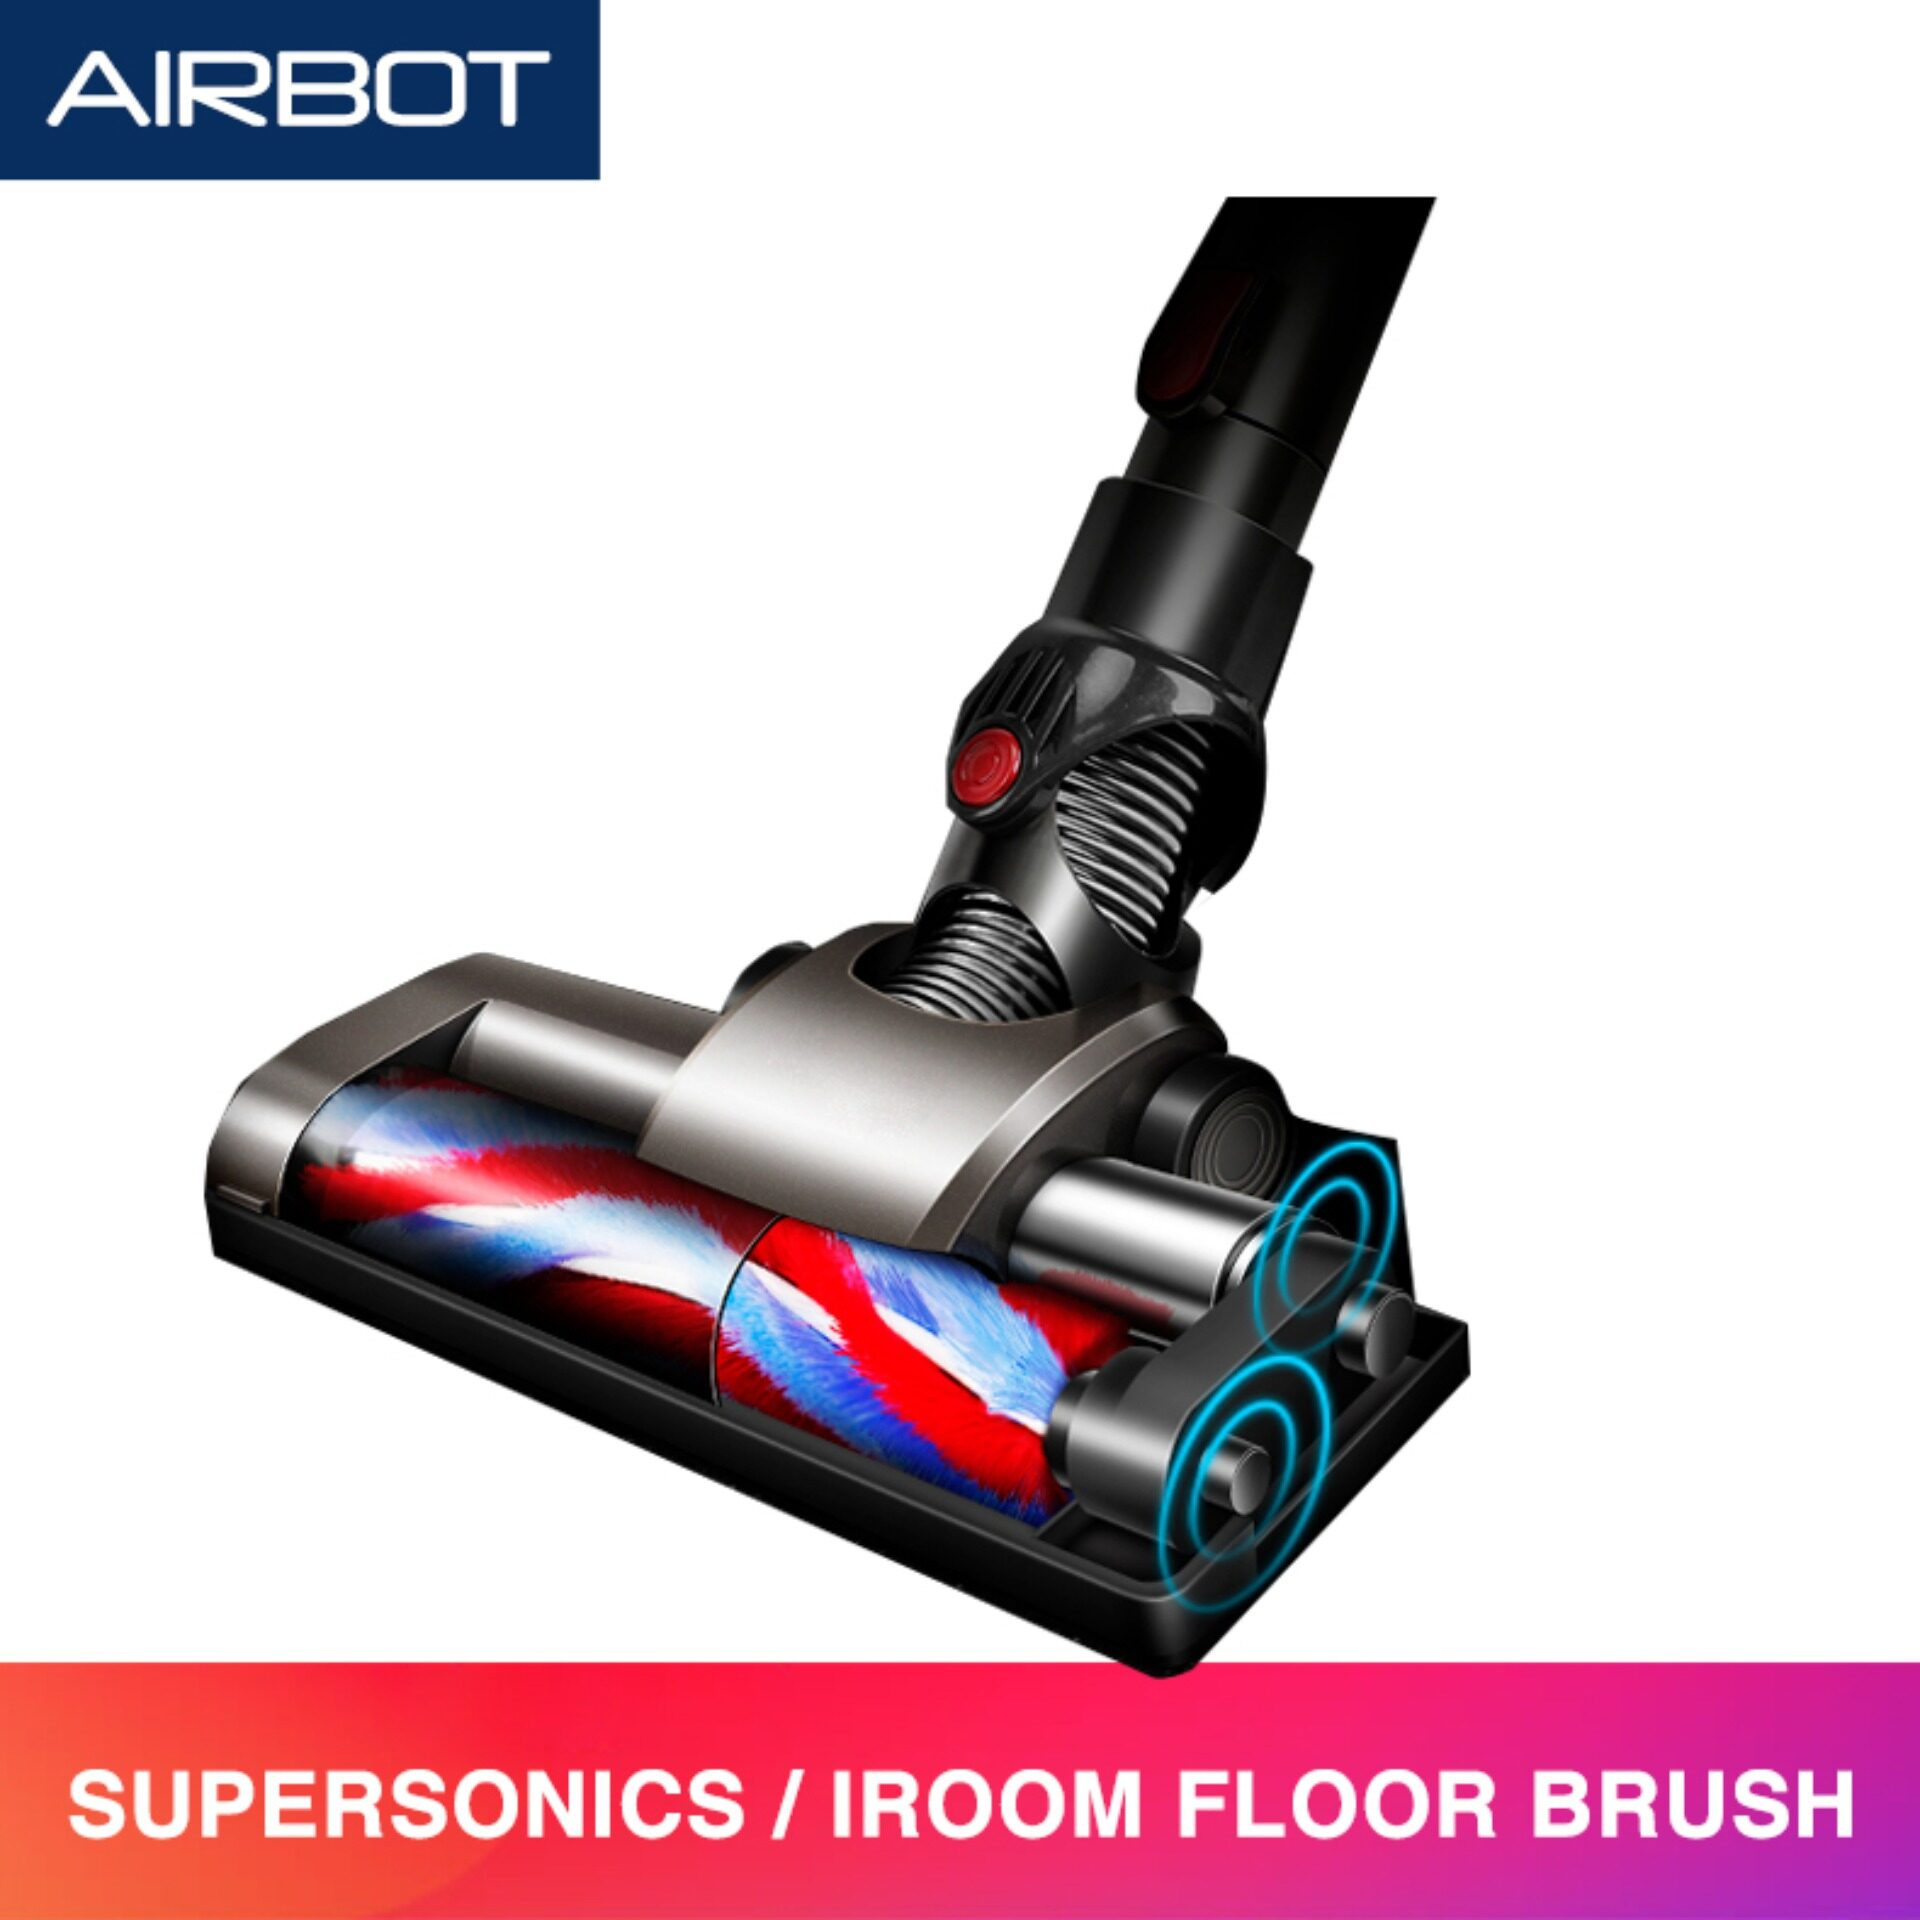 Airbot Cordless Vacuum Cleaner Fluffy Head Tool Floor Brush Set Supersonics iRoom Accessories Spare Part